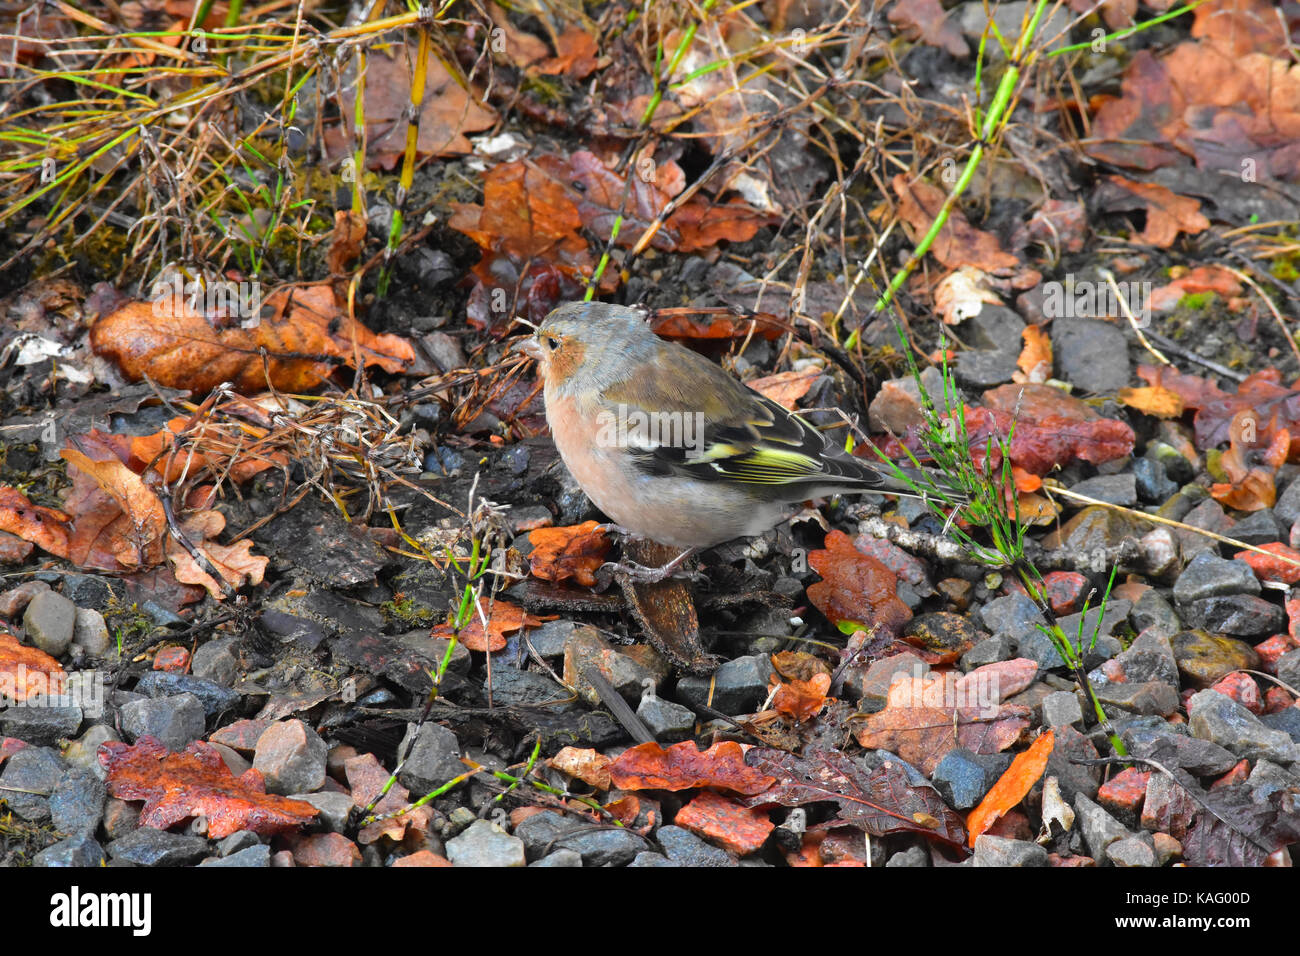 Chaffinch sitting at the side of a river bed - Stock Image